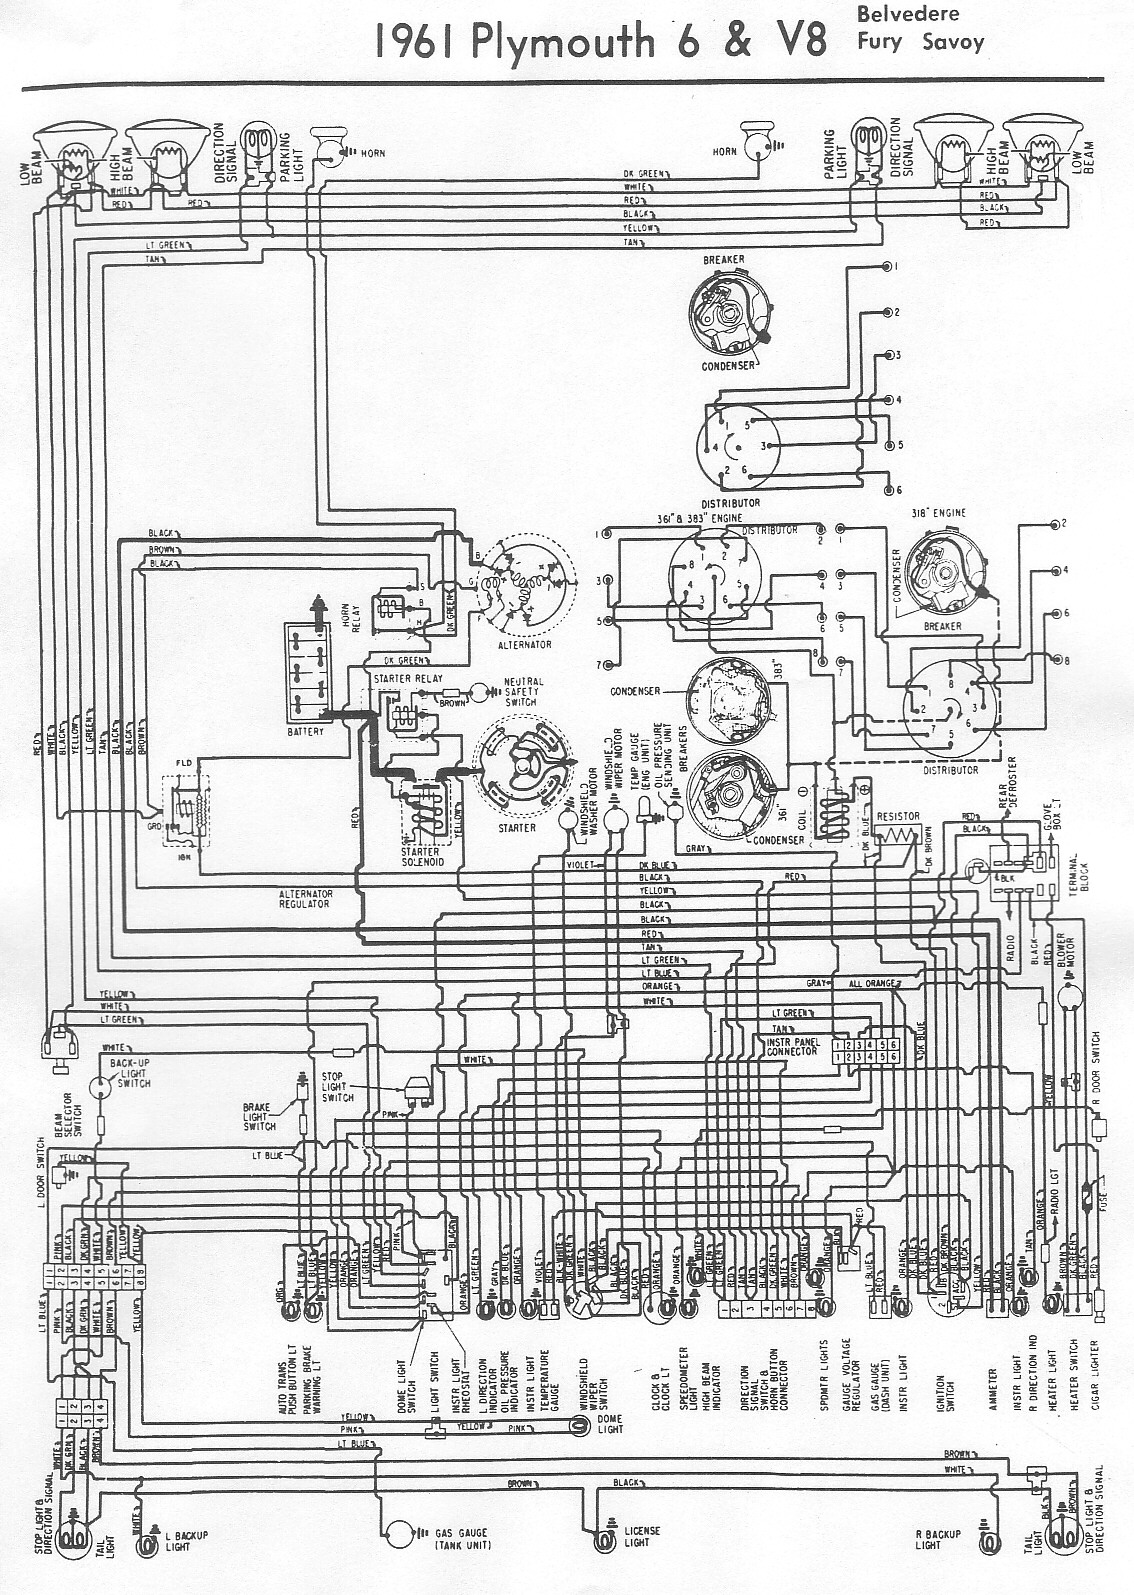 1969 plymouth fury wiring diagram electrical work wiring diagram u2022 1939 plymouth positive ground wiring [ 1134 x 1595 Pixel ]